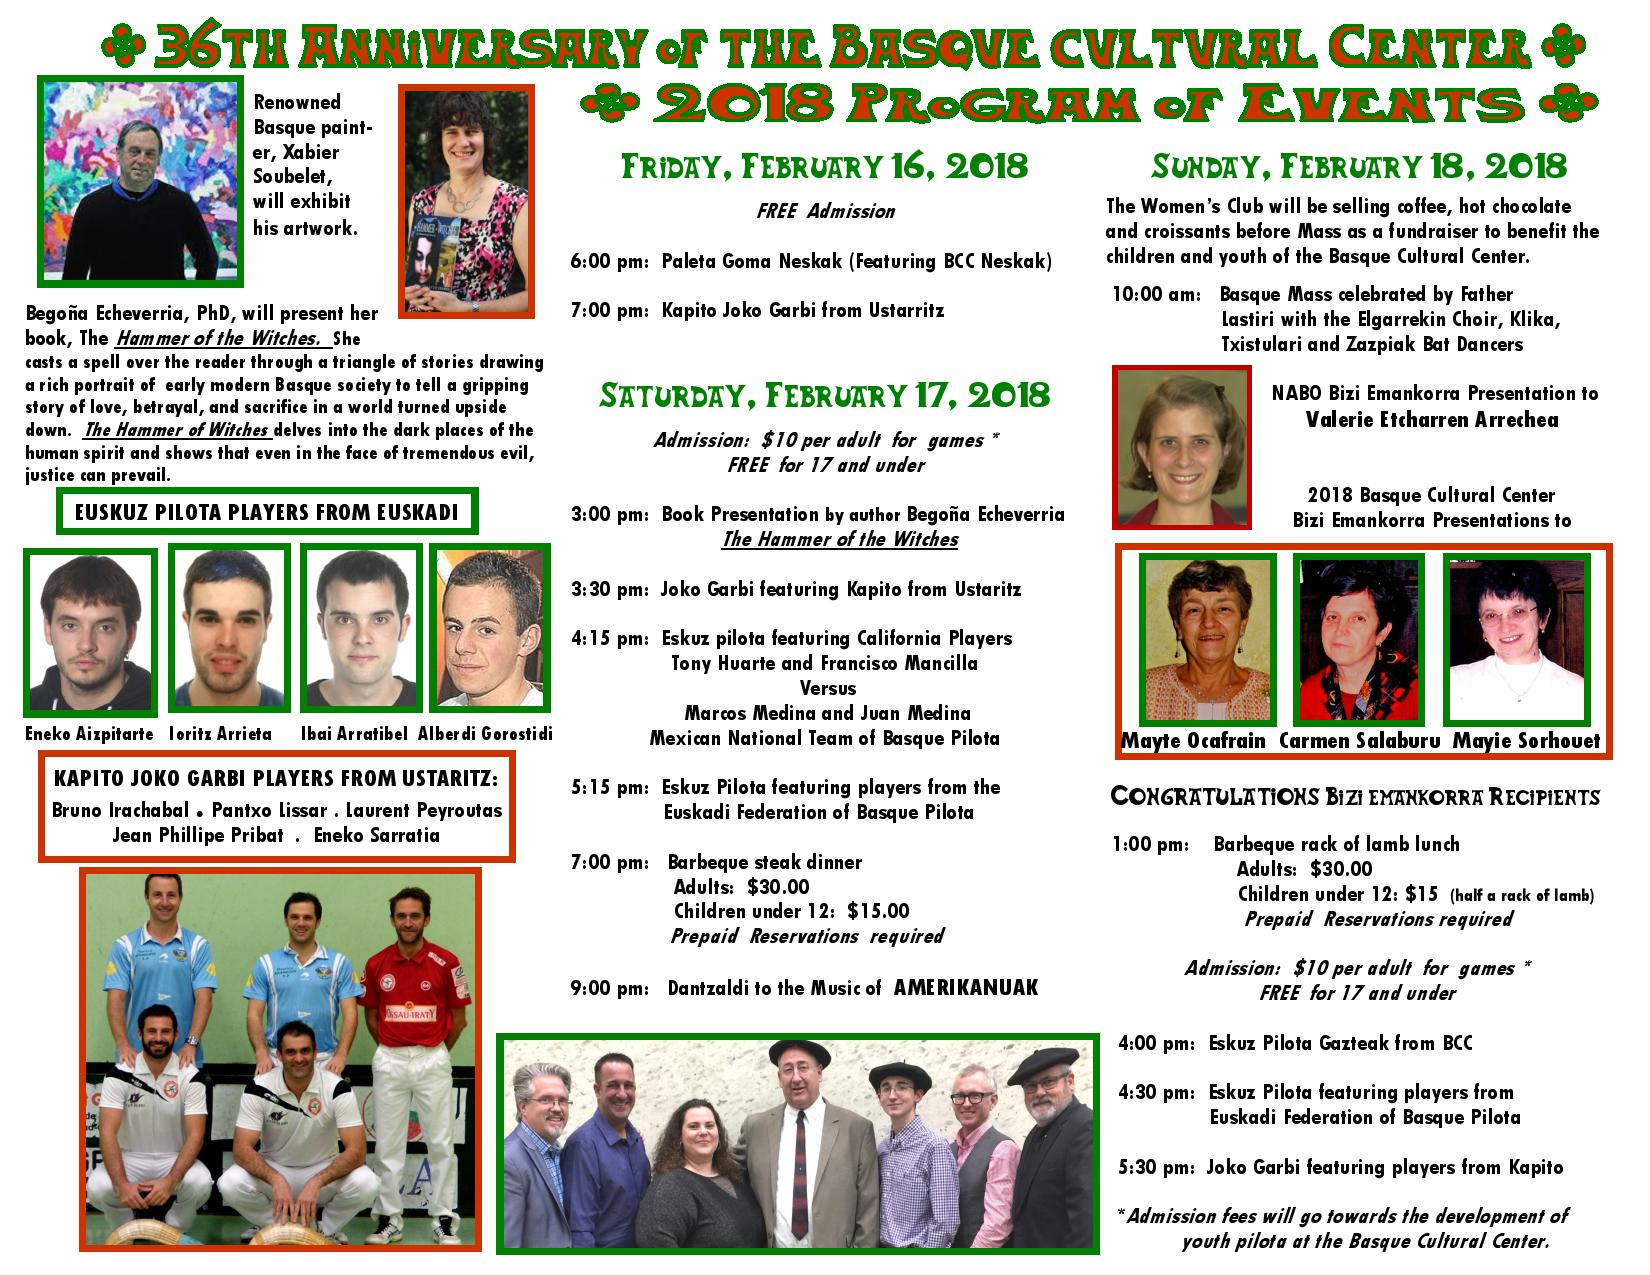 Basque Cultural Center Celebrates 36 Anniversary February 16-18th Tickets on Sale Now!